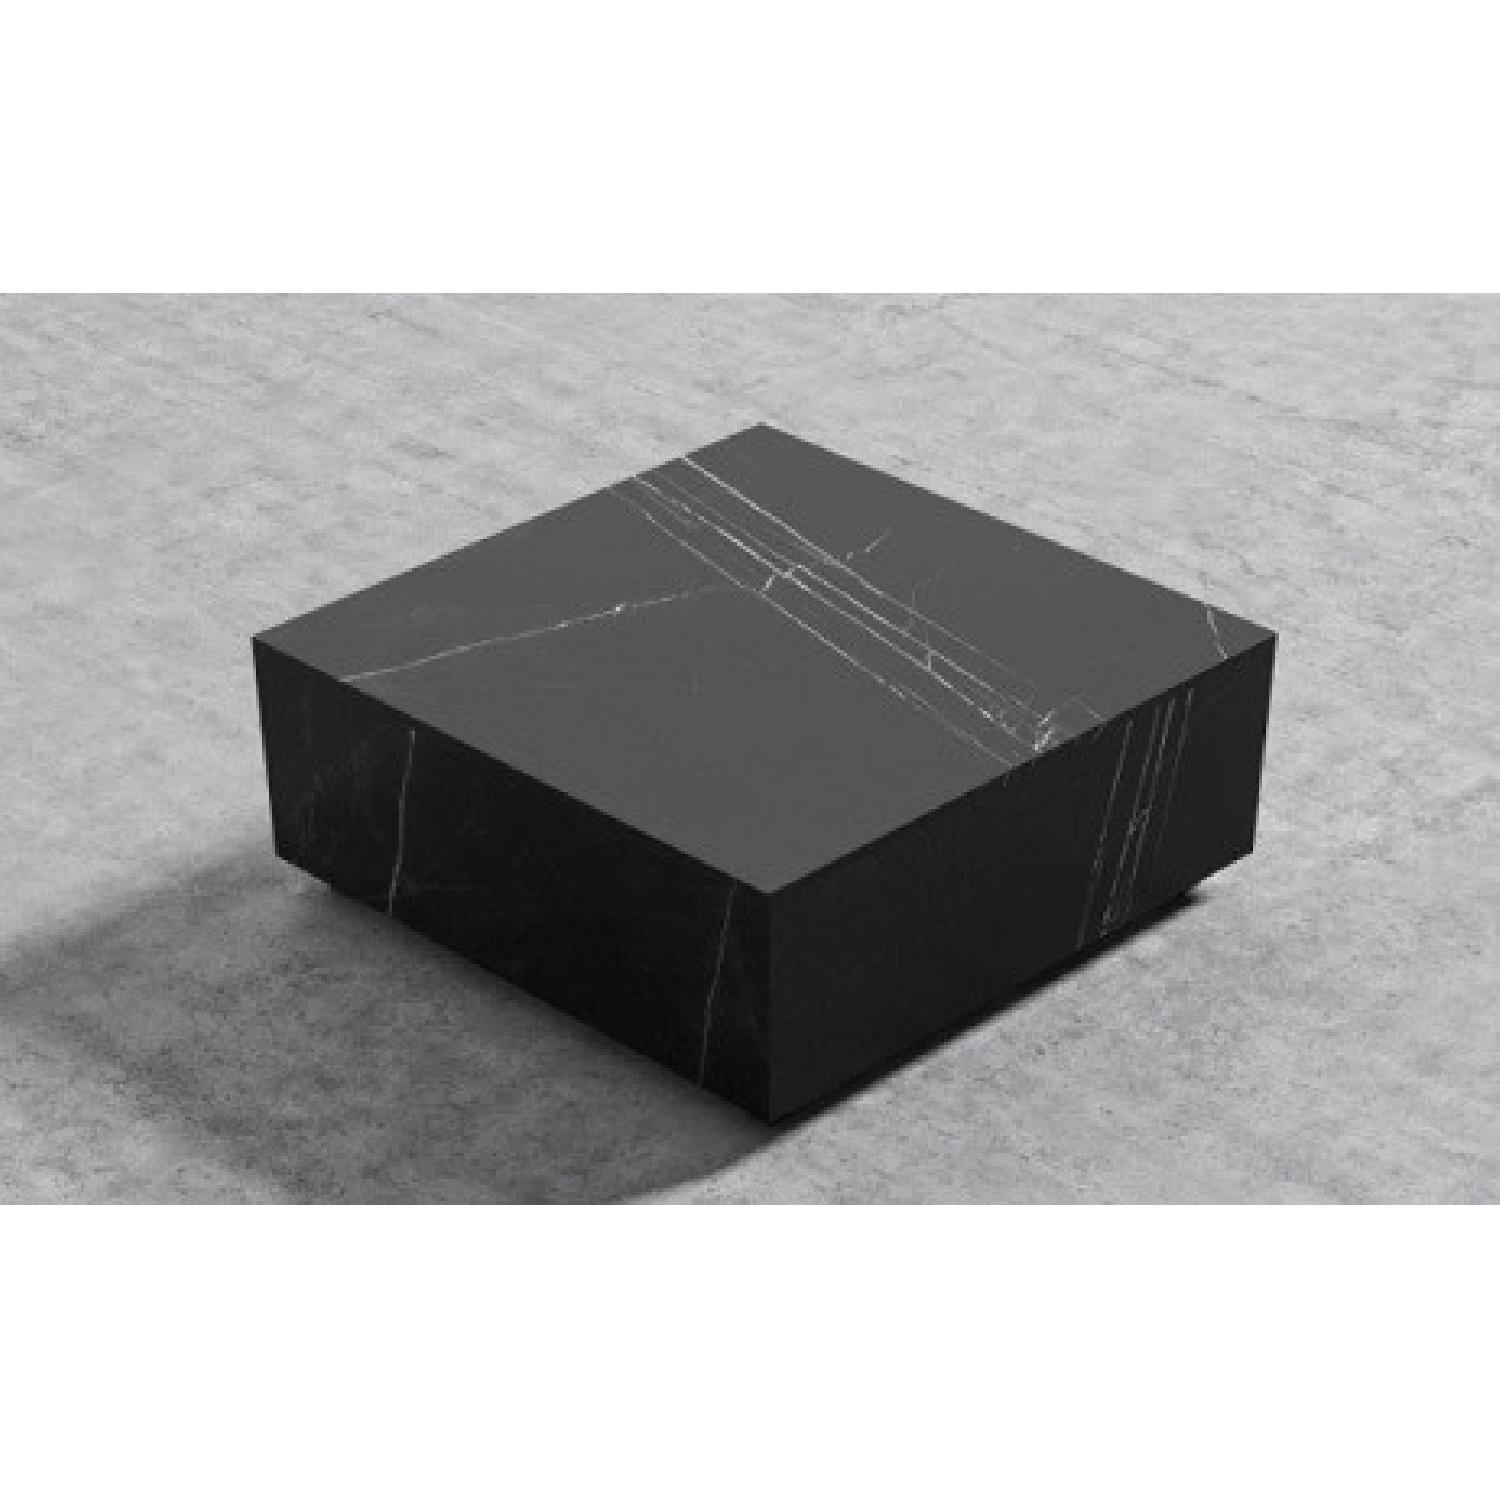 Rove Concept Black Marble Glossy Coffee Table - image-7